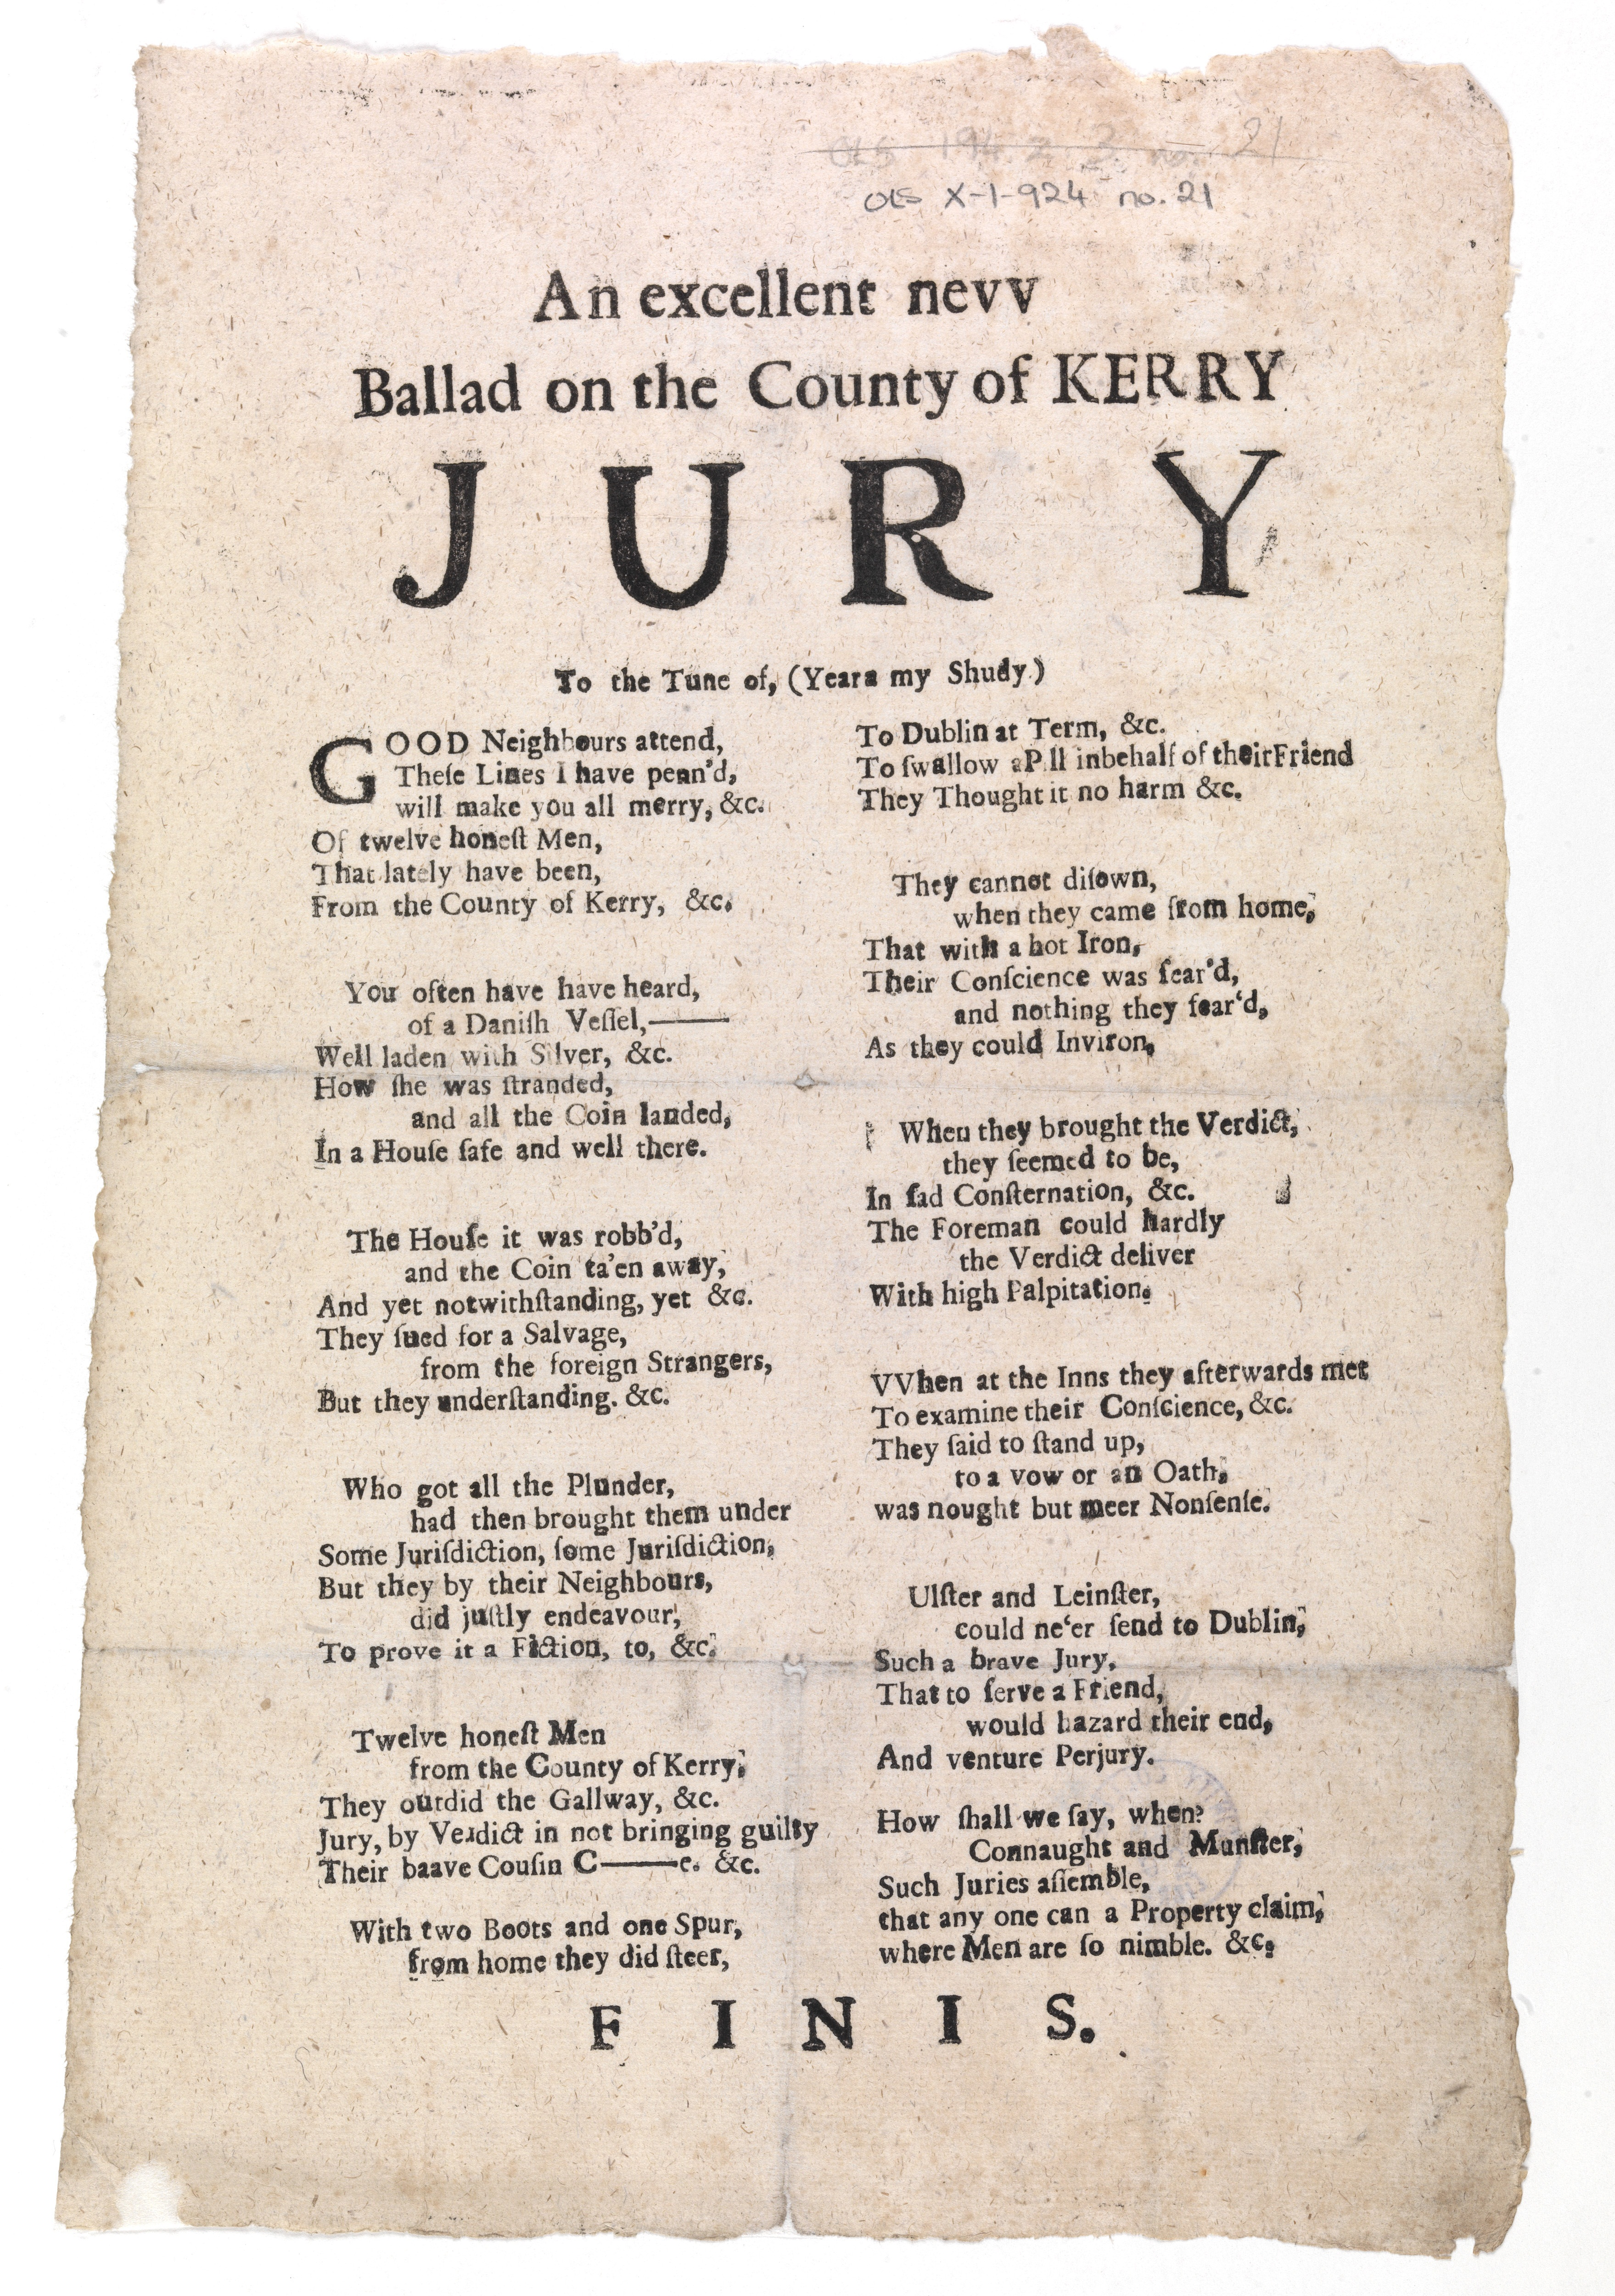 'An excellent new ballad on the county of Kerry jury' [Dublin, c.1735]. Shelf mark OLS X-1-924 no.21